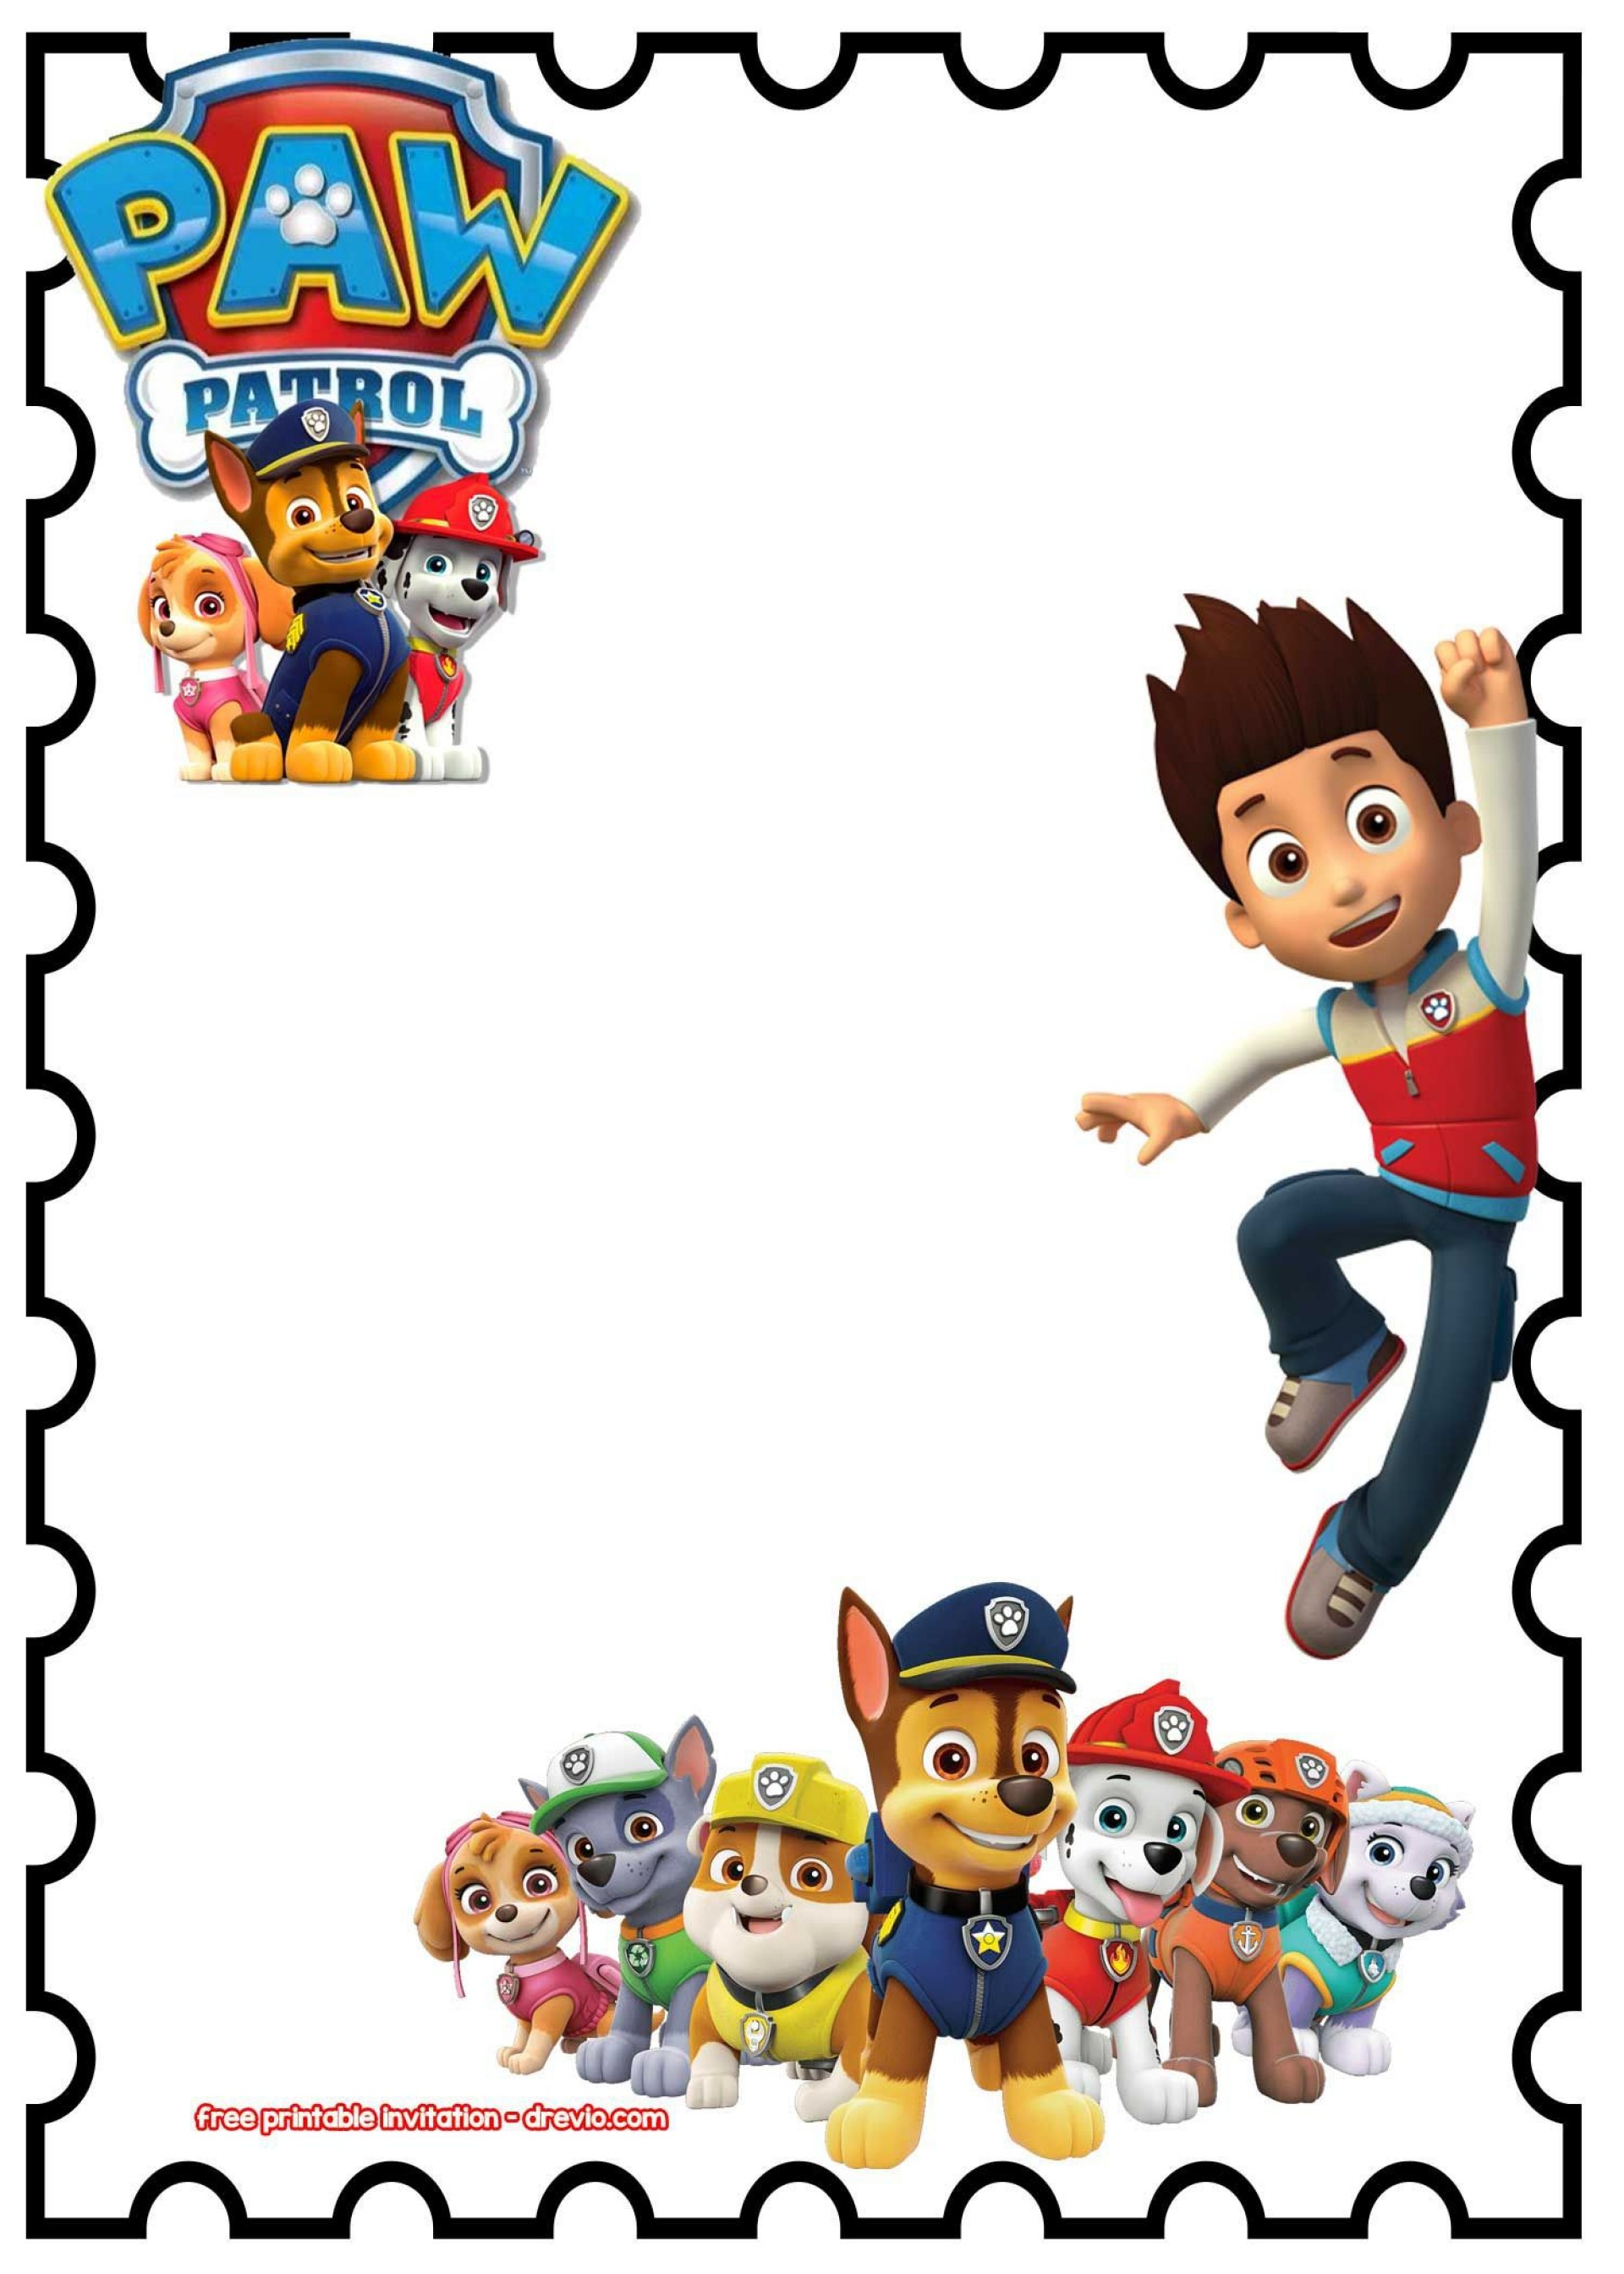 003 Awesome Paw Patrol Birthday Invitation Template Picture  Party Invite Wording Skye Free1920